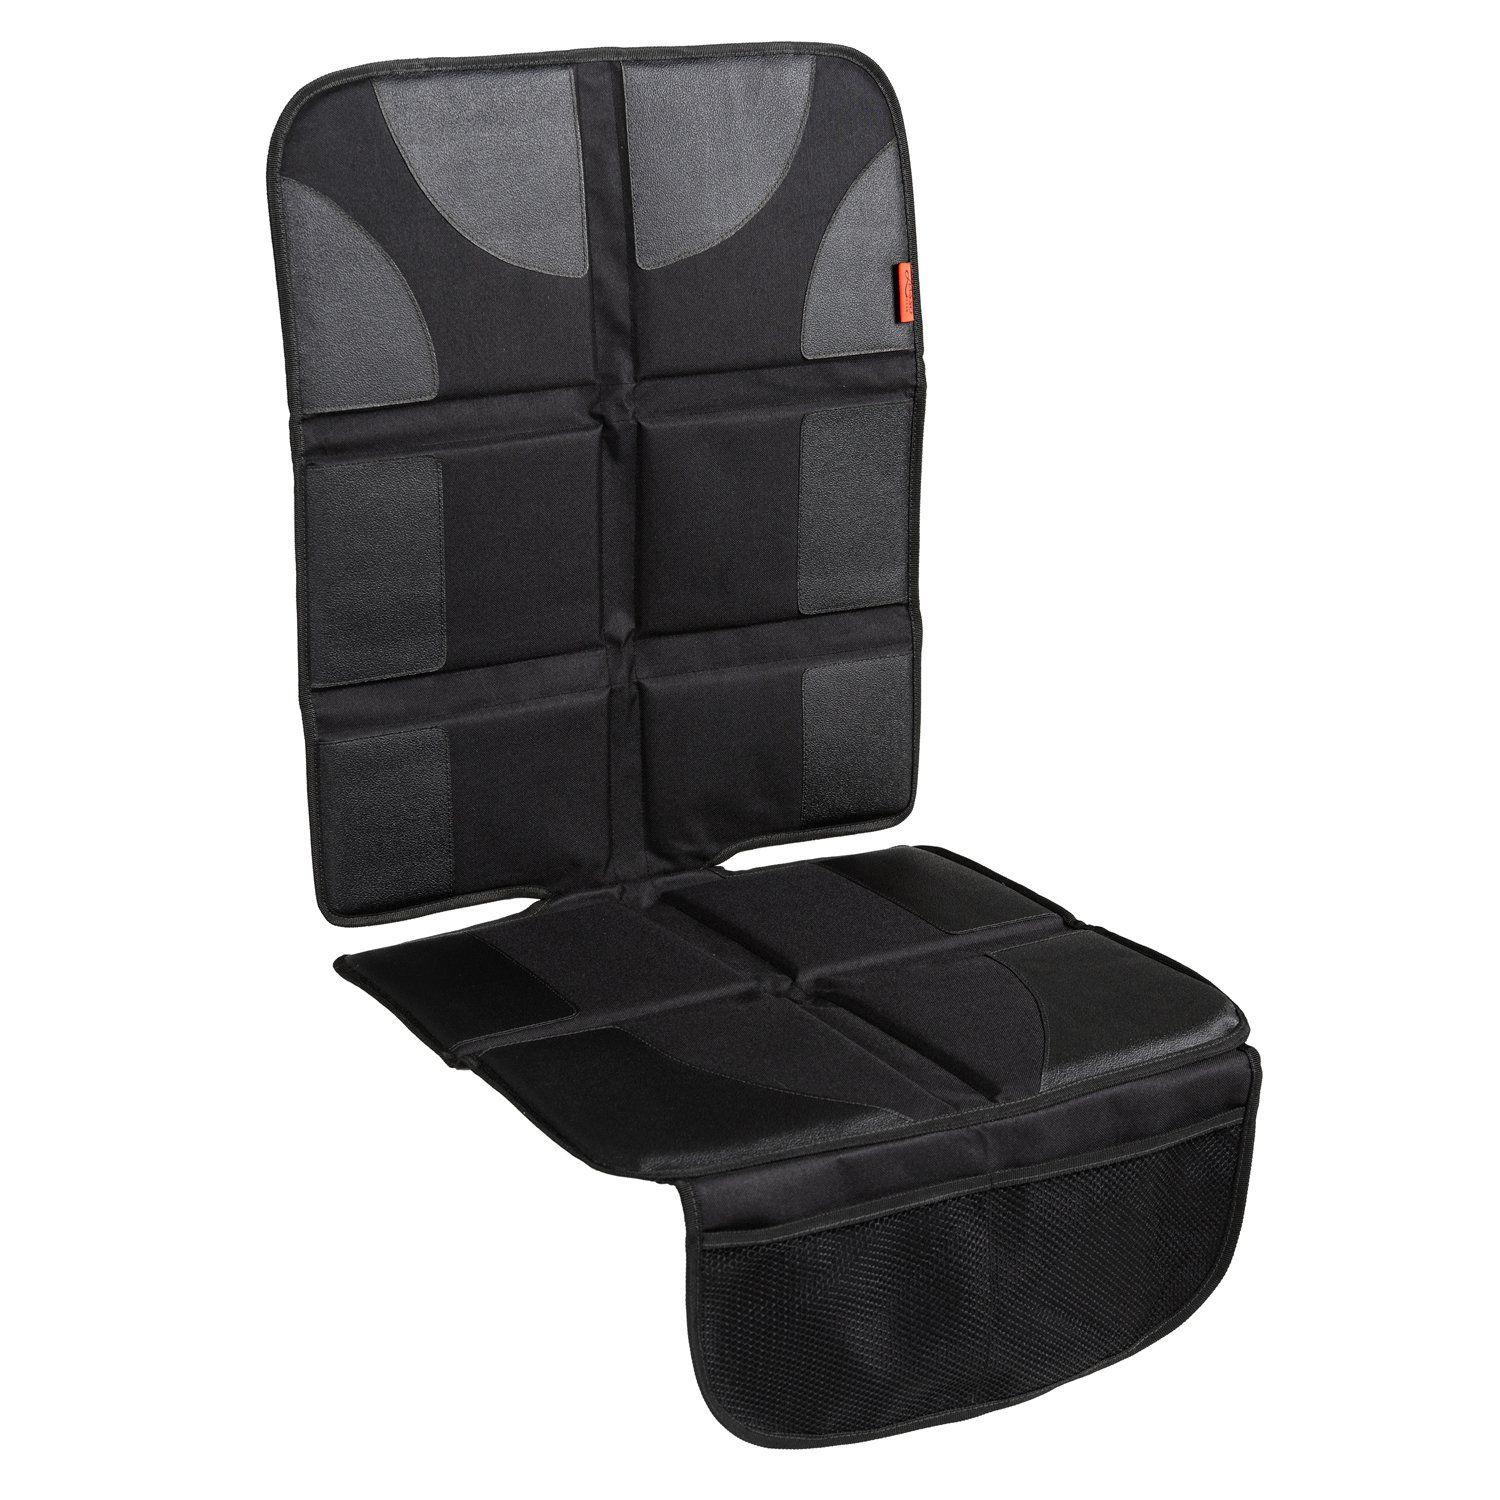 Car seat protector for leather seat